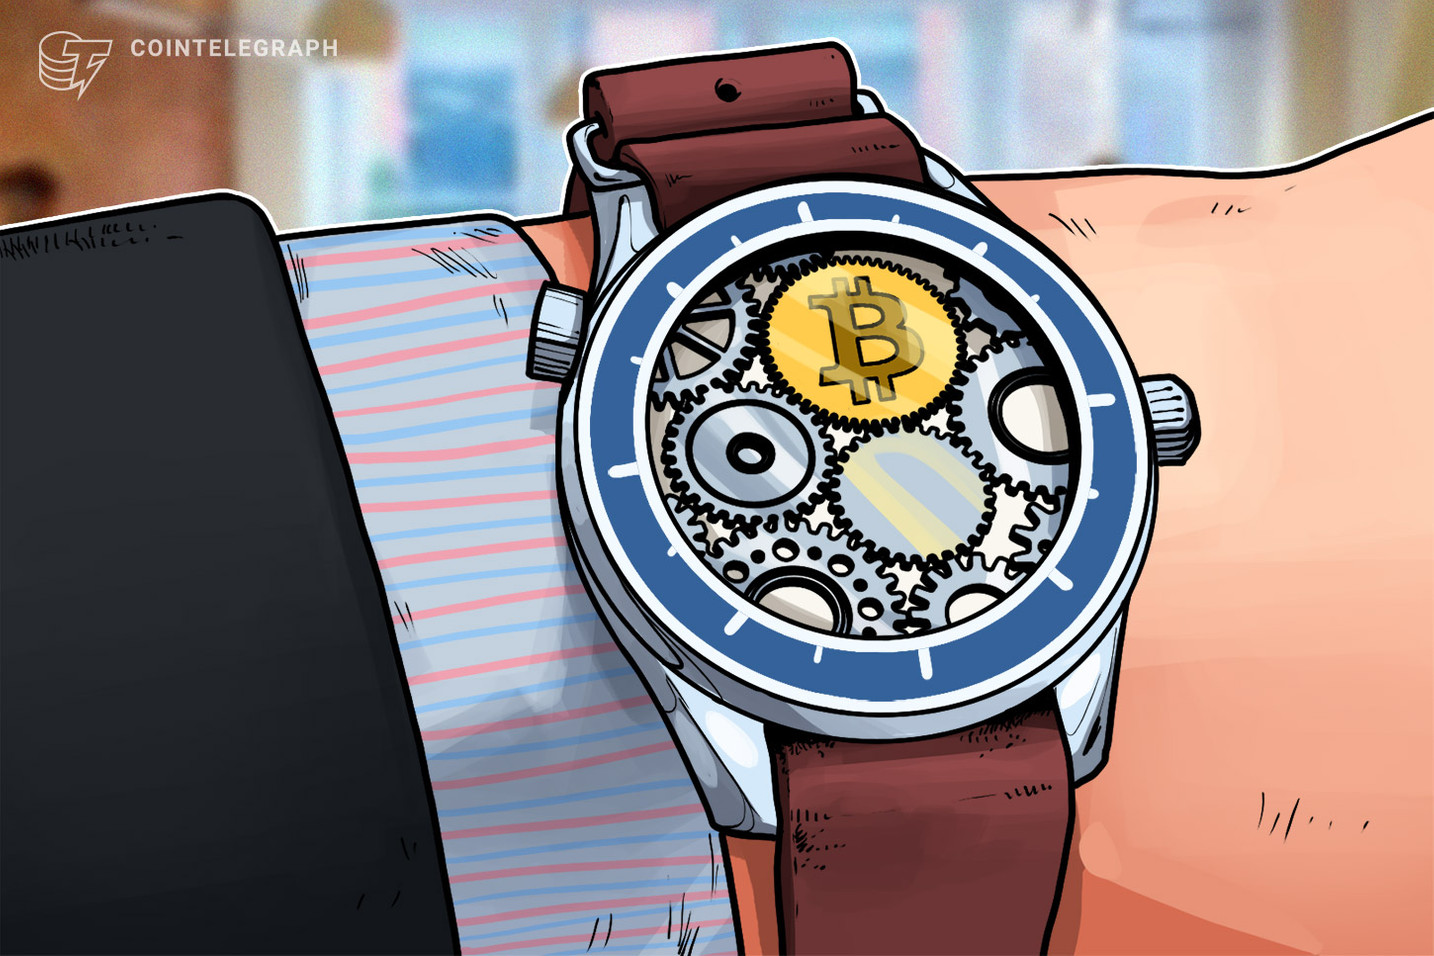 Franck Muller Releases Luxury Watch With Bitcoin Cold Wallet Functionality